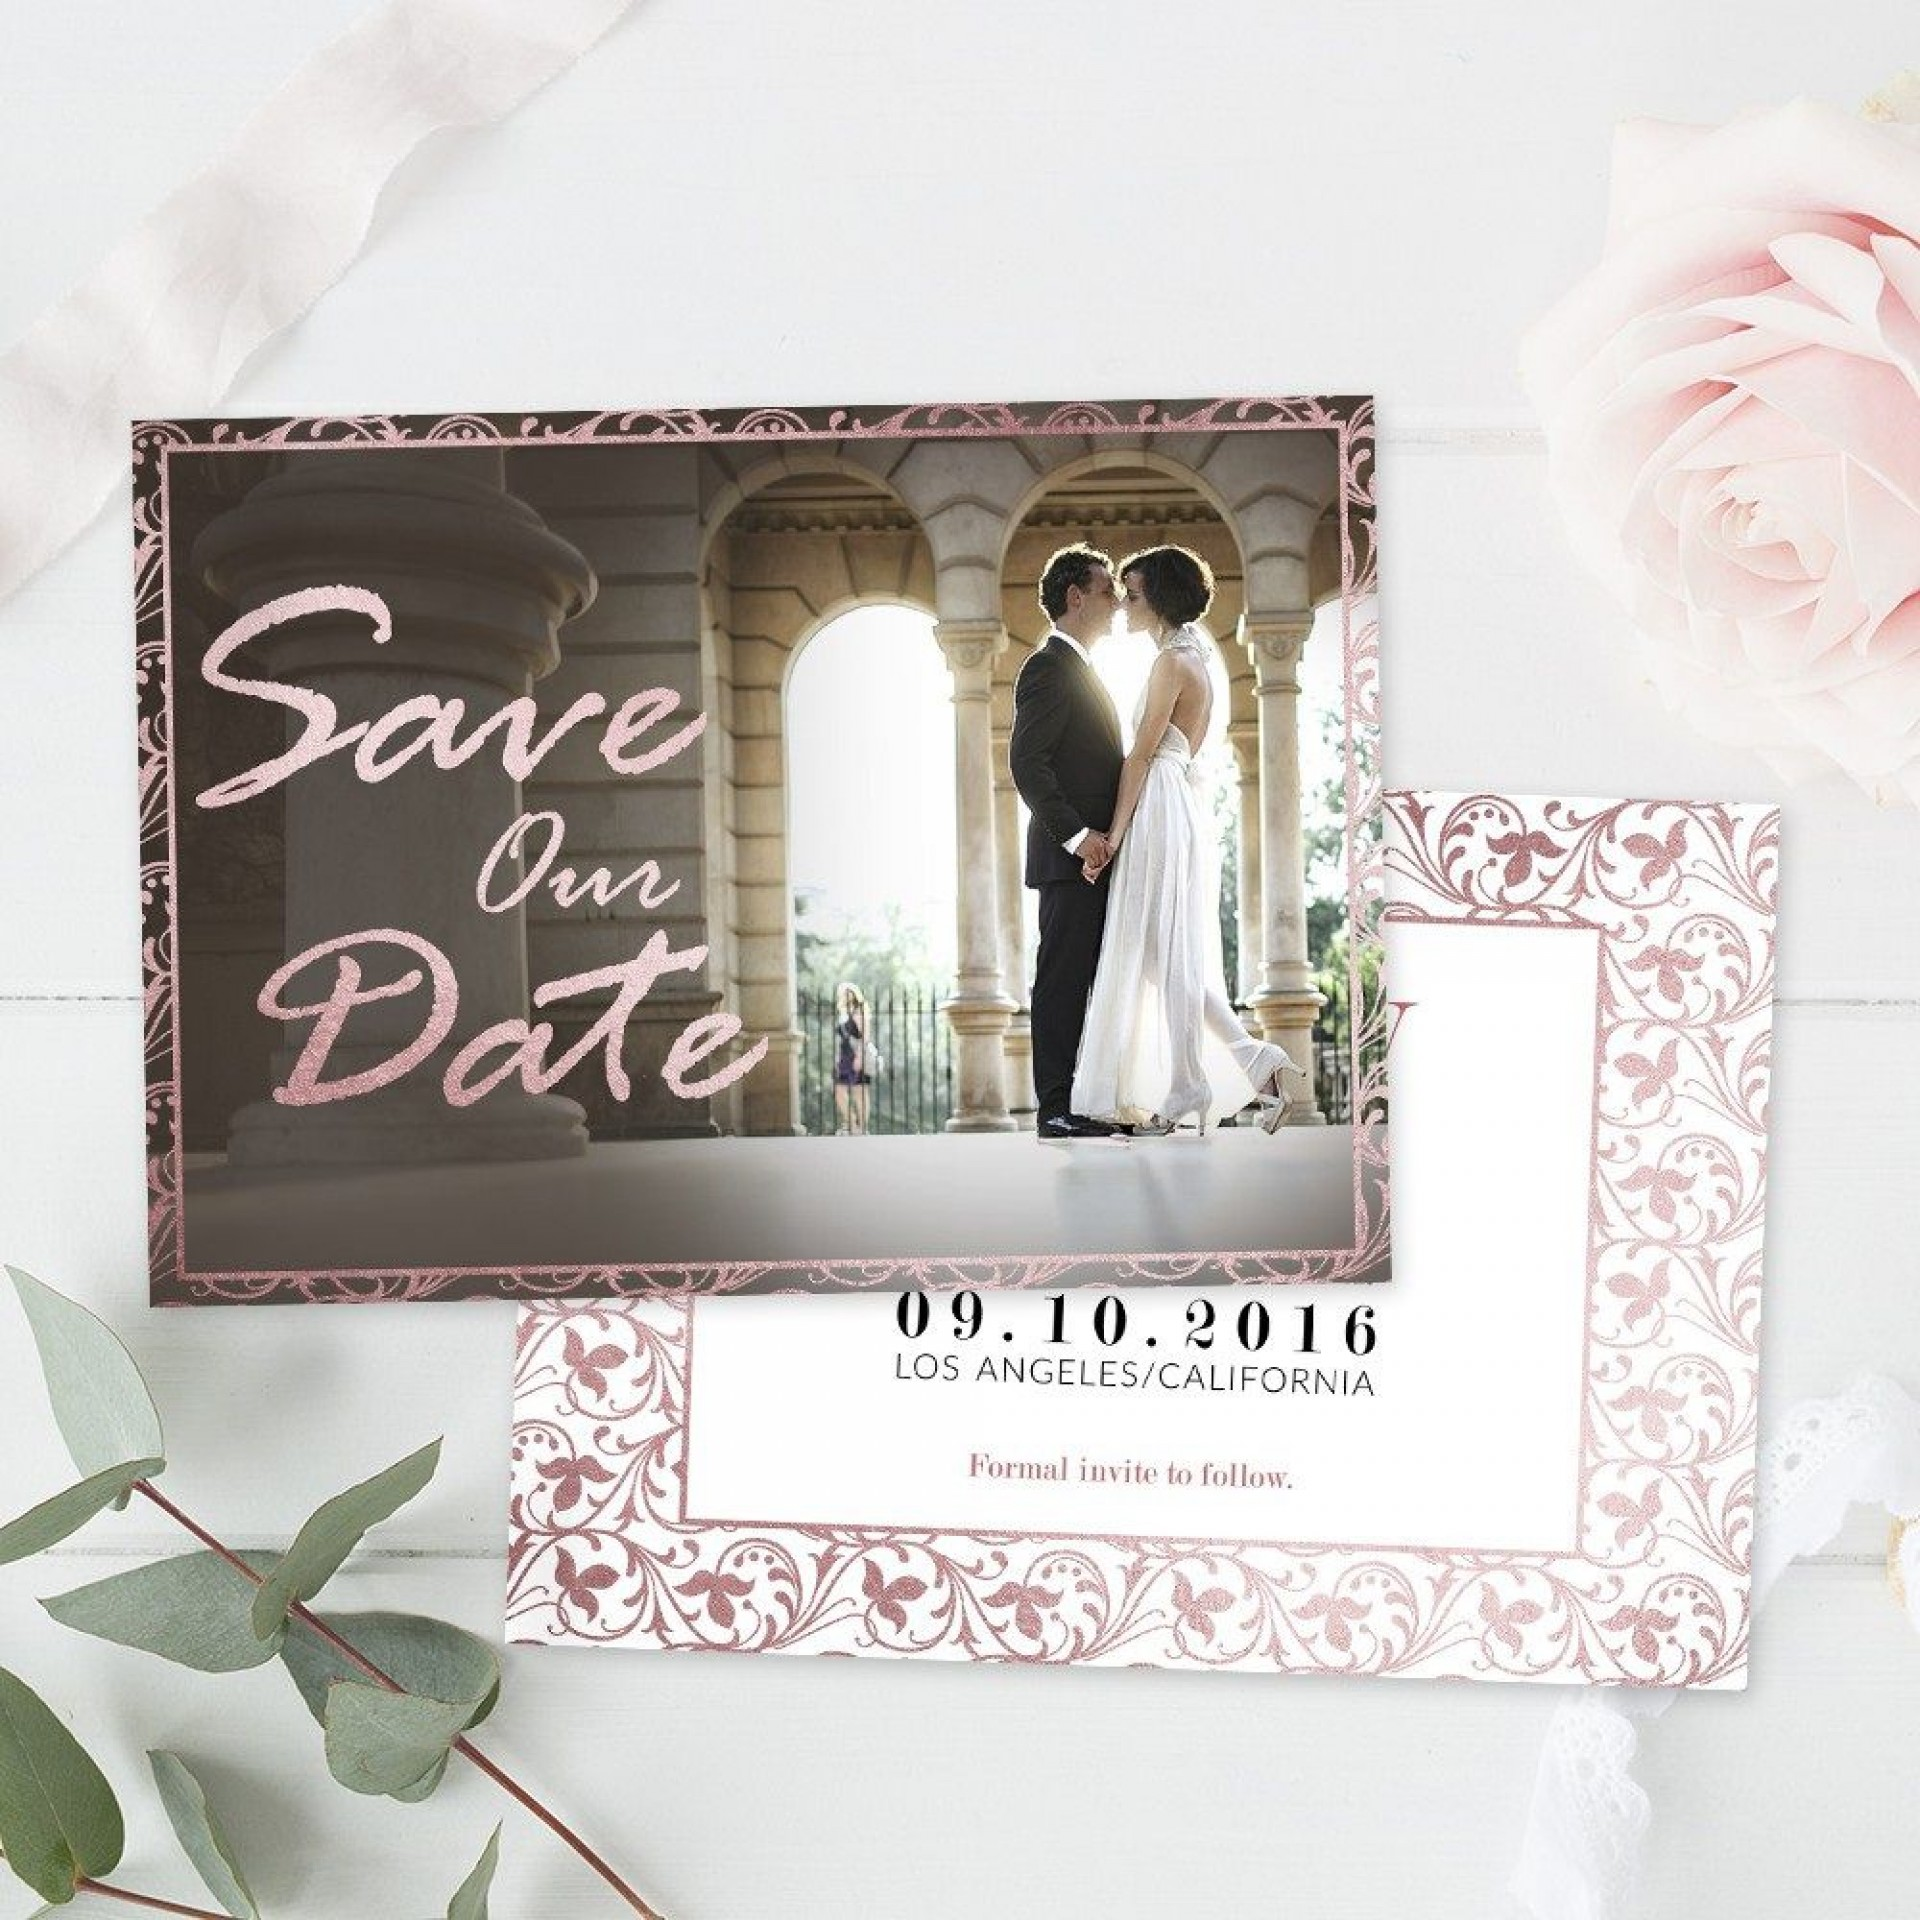 006 Wonderful Save The Date Template Photoshop Highest Clarity  Adobe Card1920